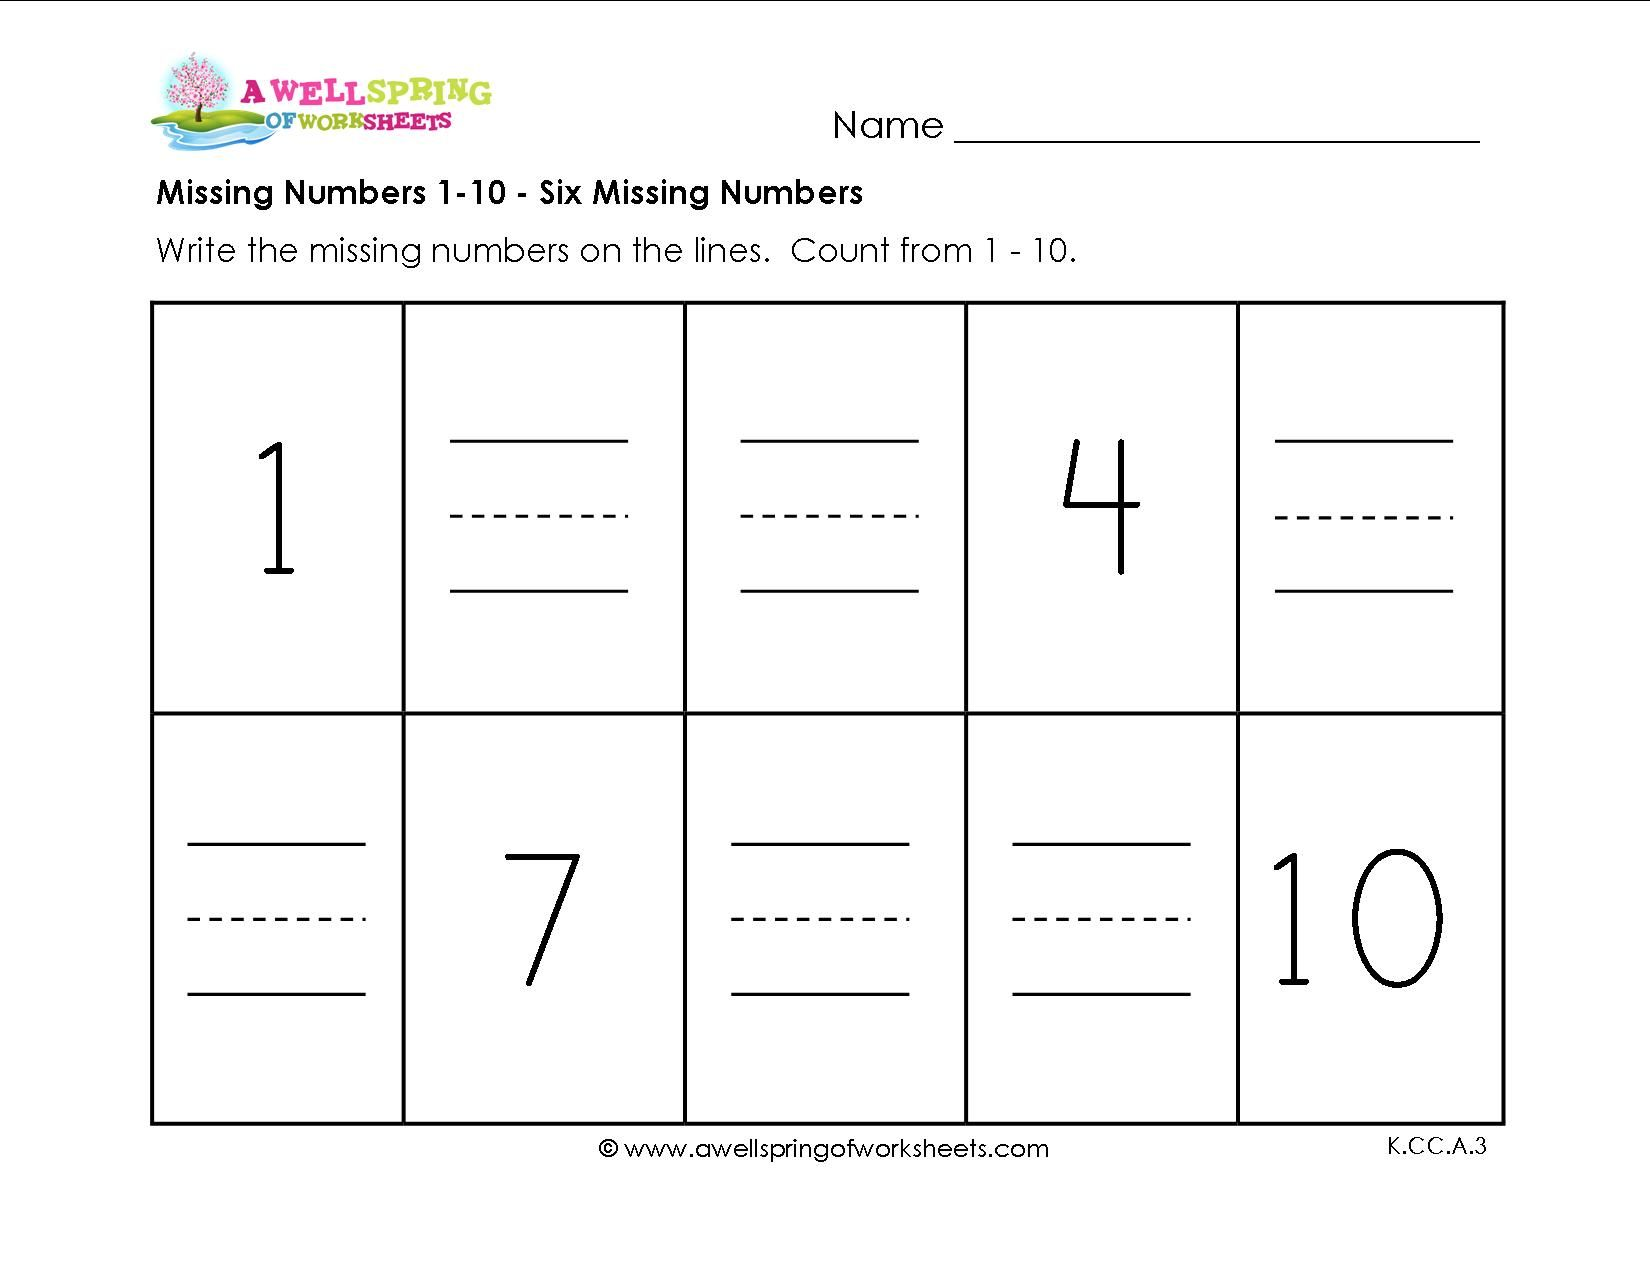 Worksheet Missing Numbers Worksheet 1 To 10 missing numbers 1 10 six premium jpg number worksheets